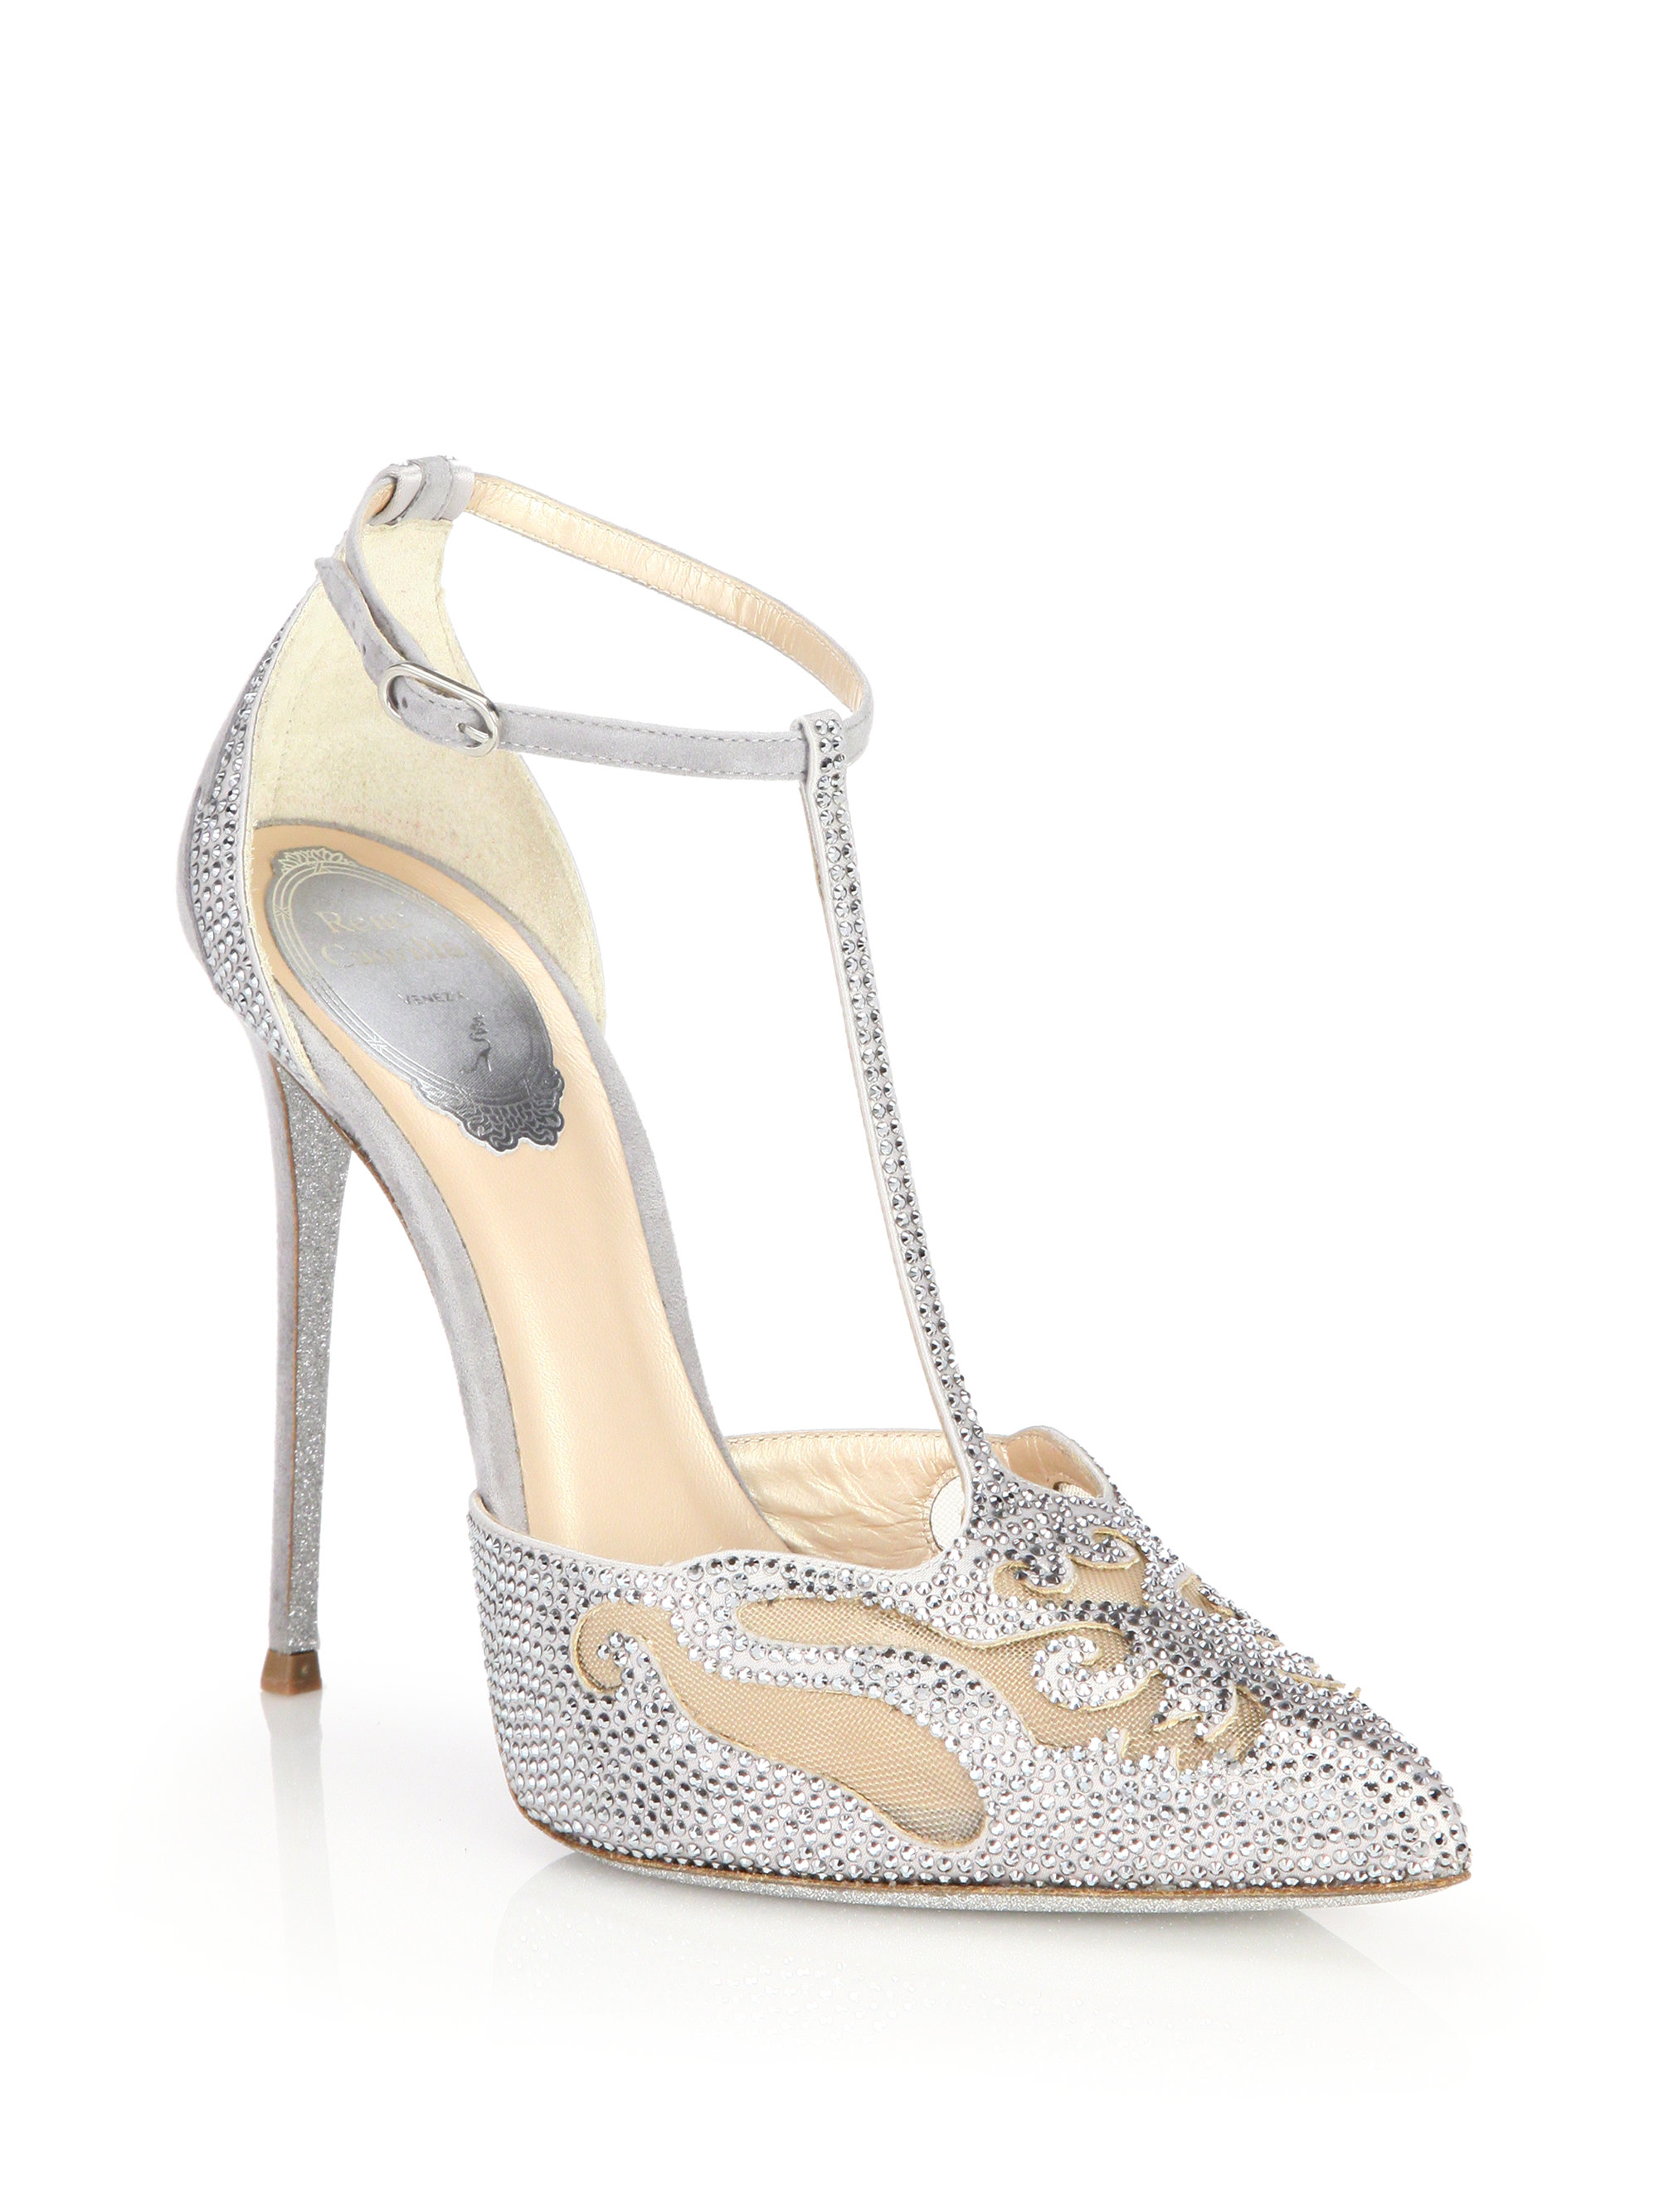 Lyst Rene Caovilla Jeweled Suede Amp Mesh T Strap Pumps In